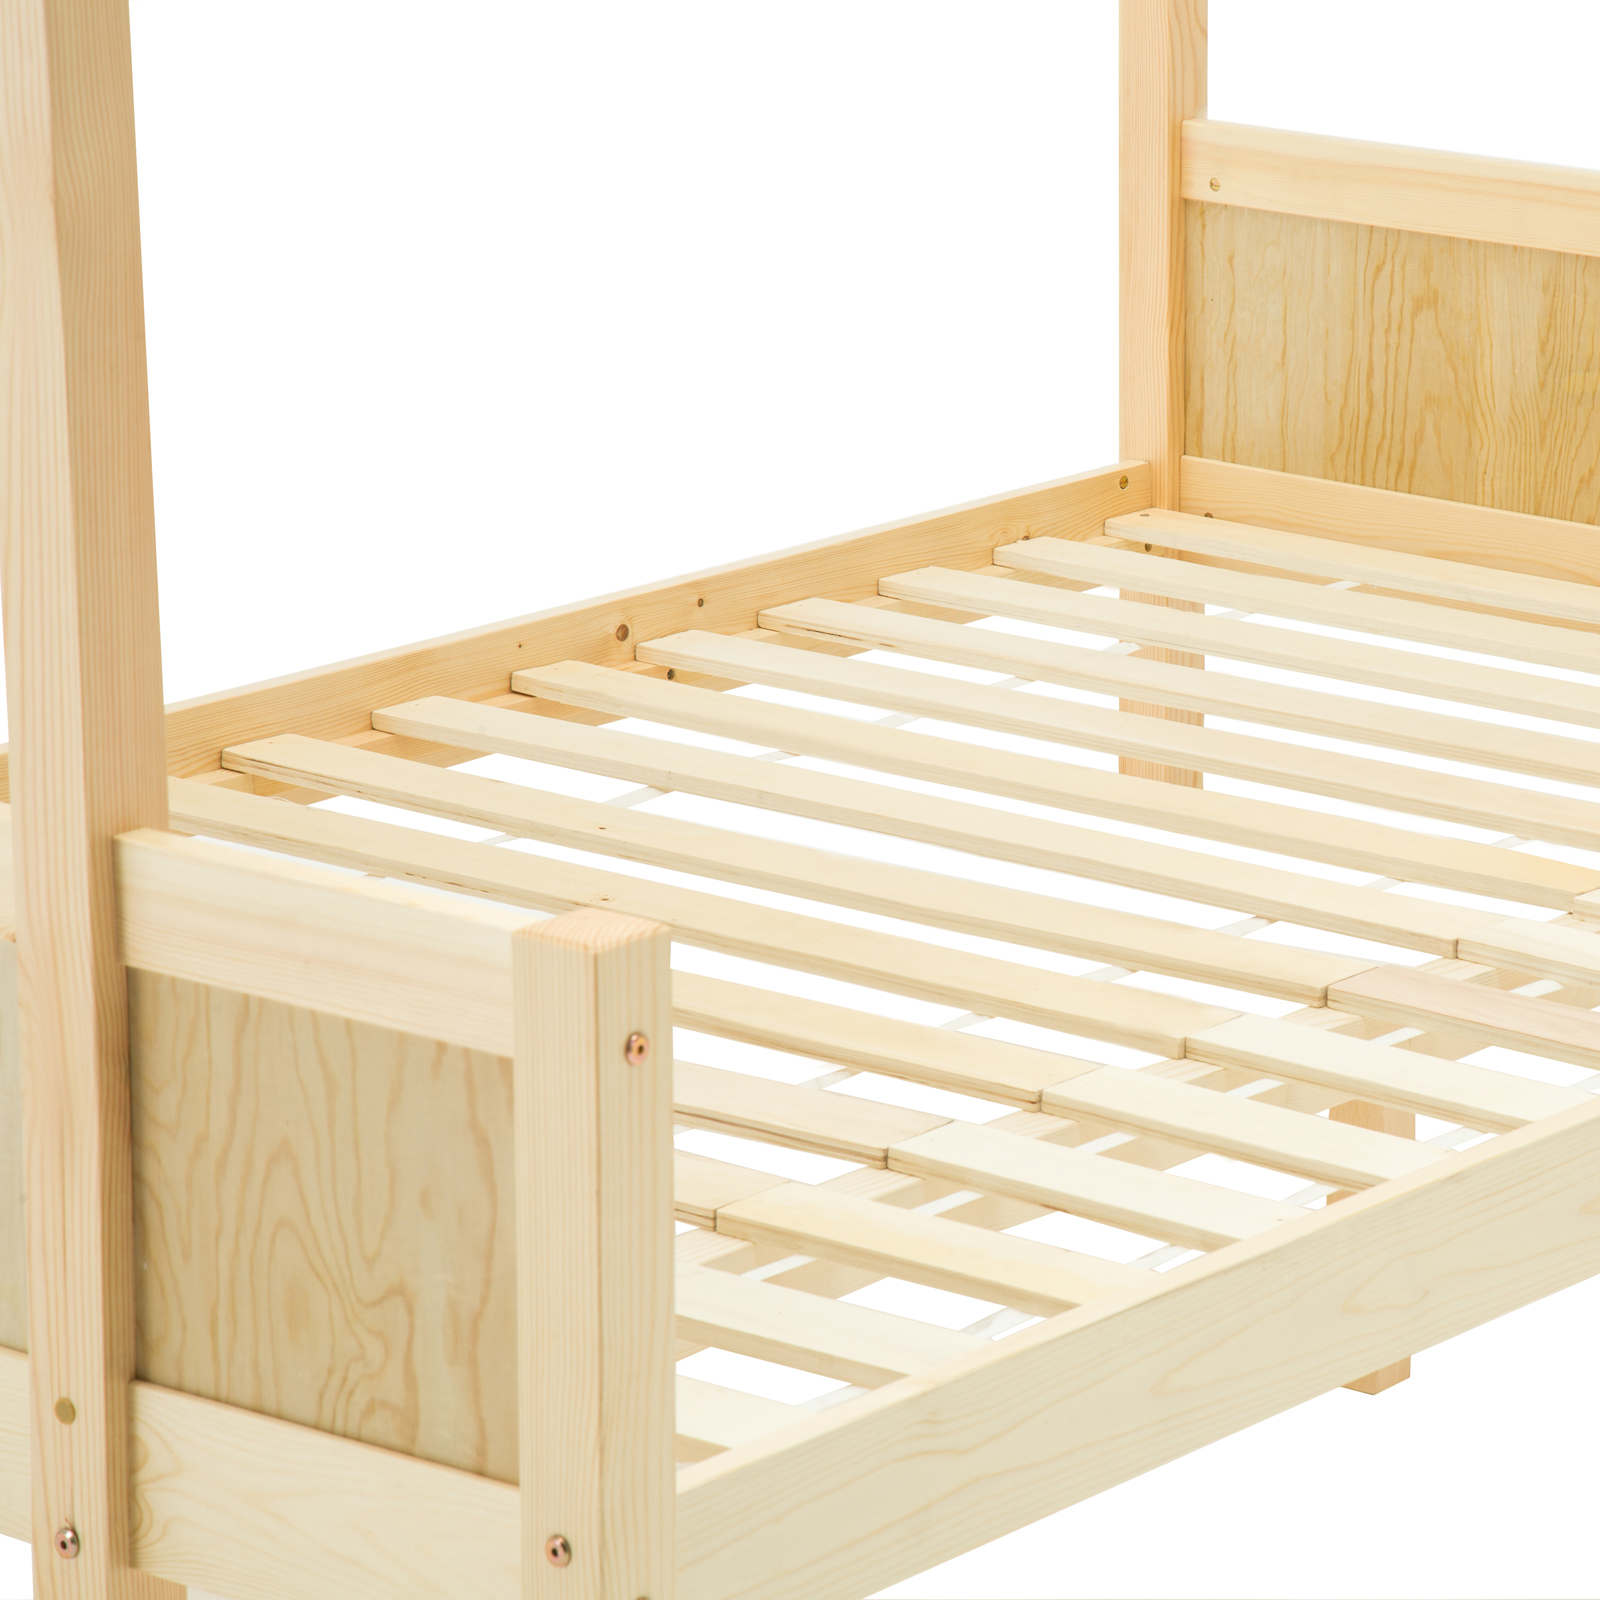 Bn pine triple pinewood bunk bed wooden finished bedroom - White and pine bedroom furniture ...